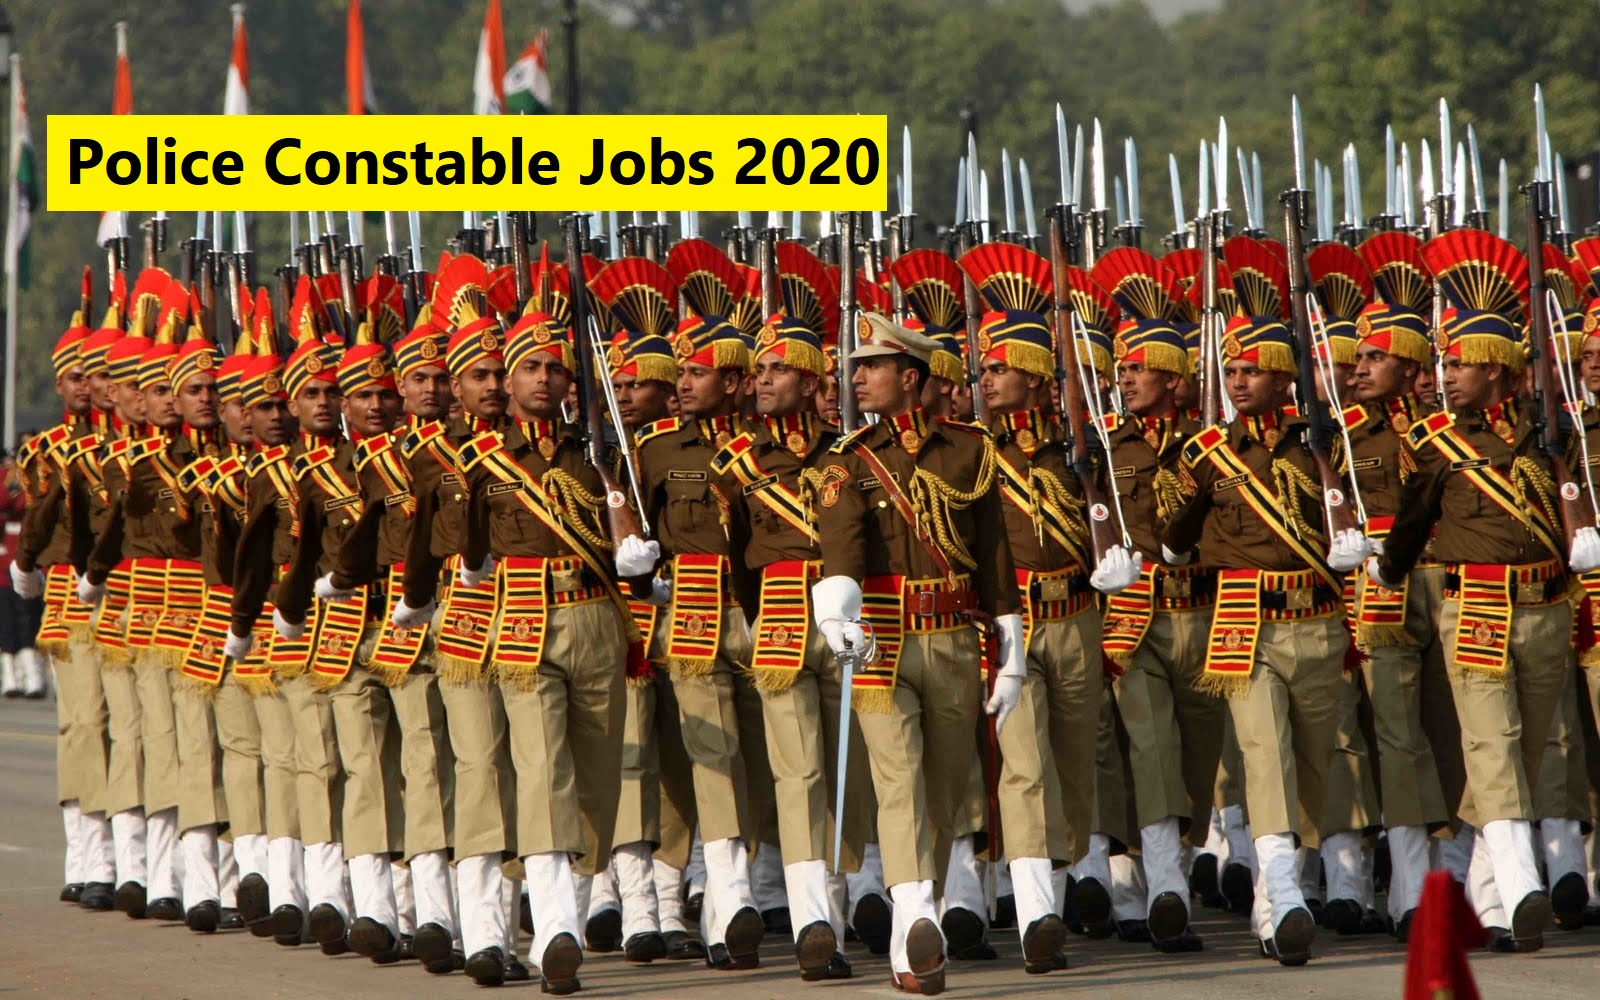 Police Constable Job Vacancies 2020 across India first on study 24x7